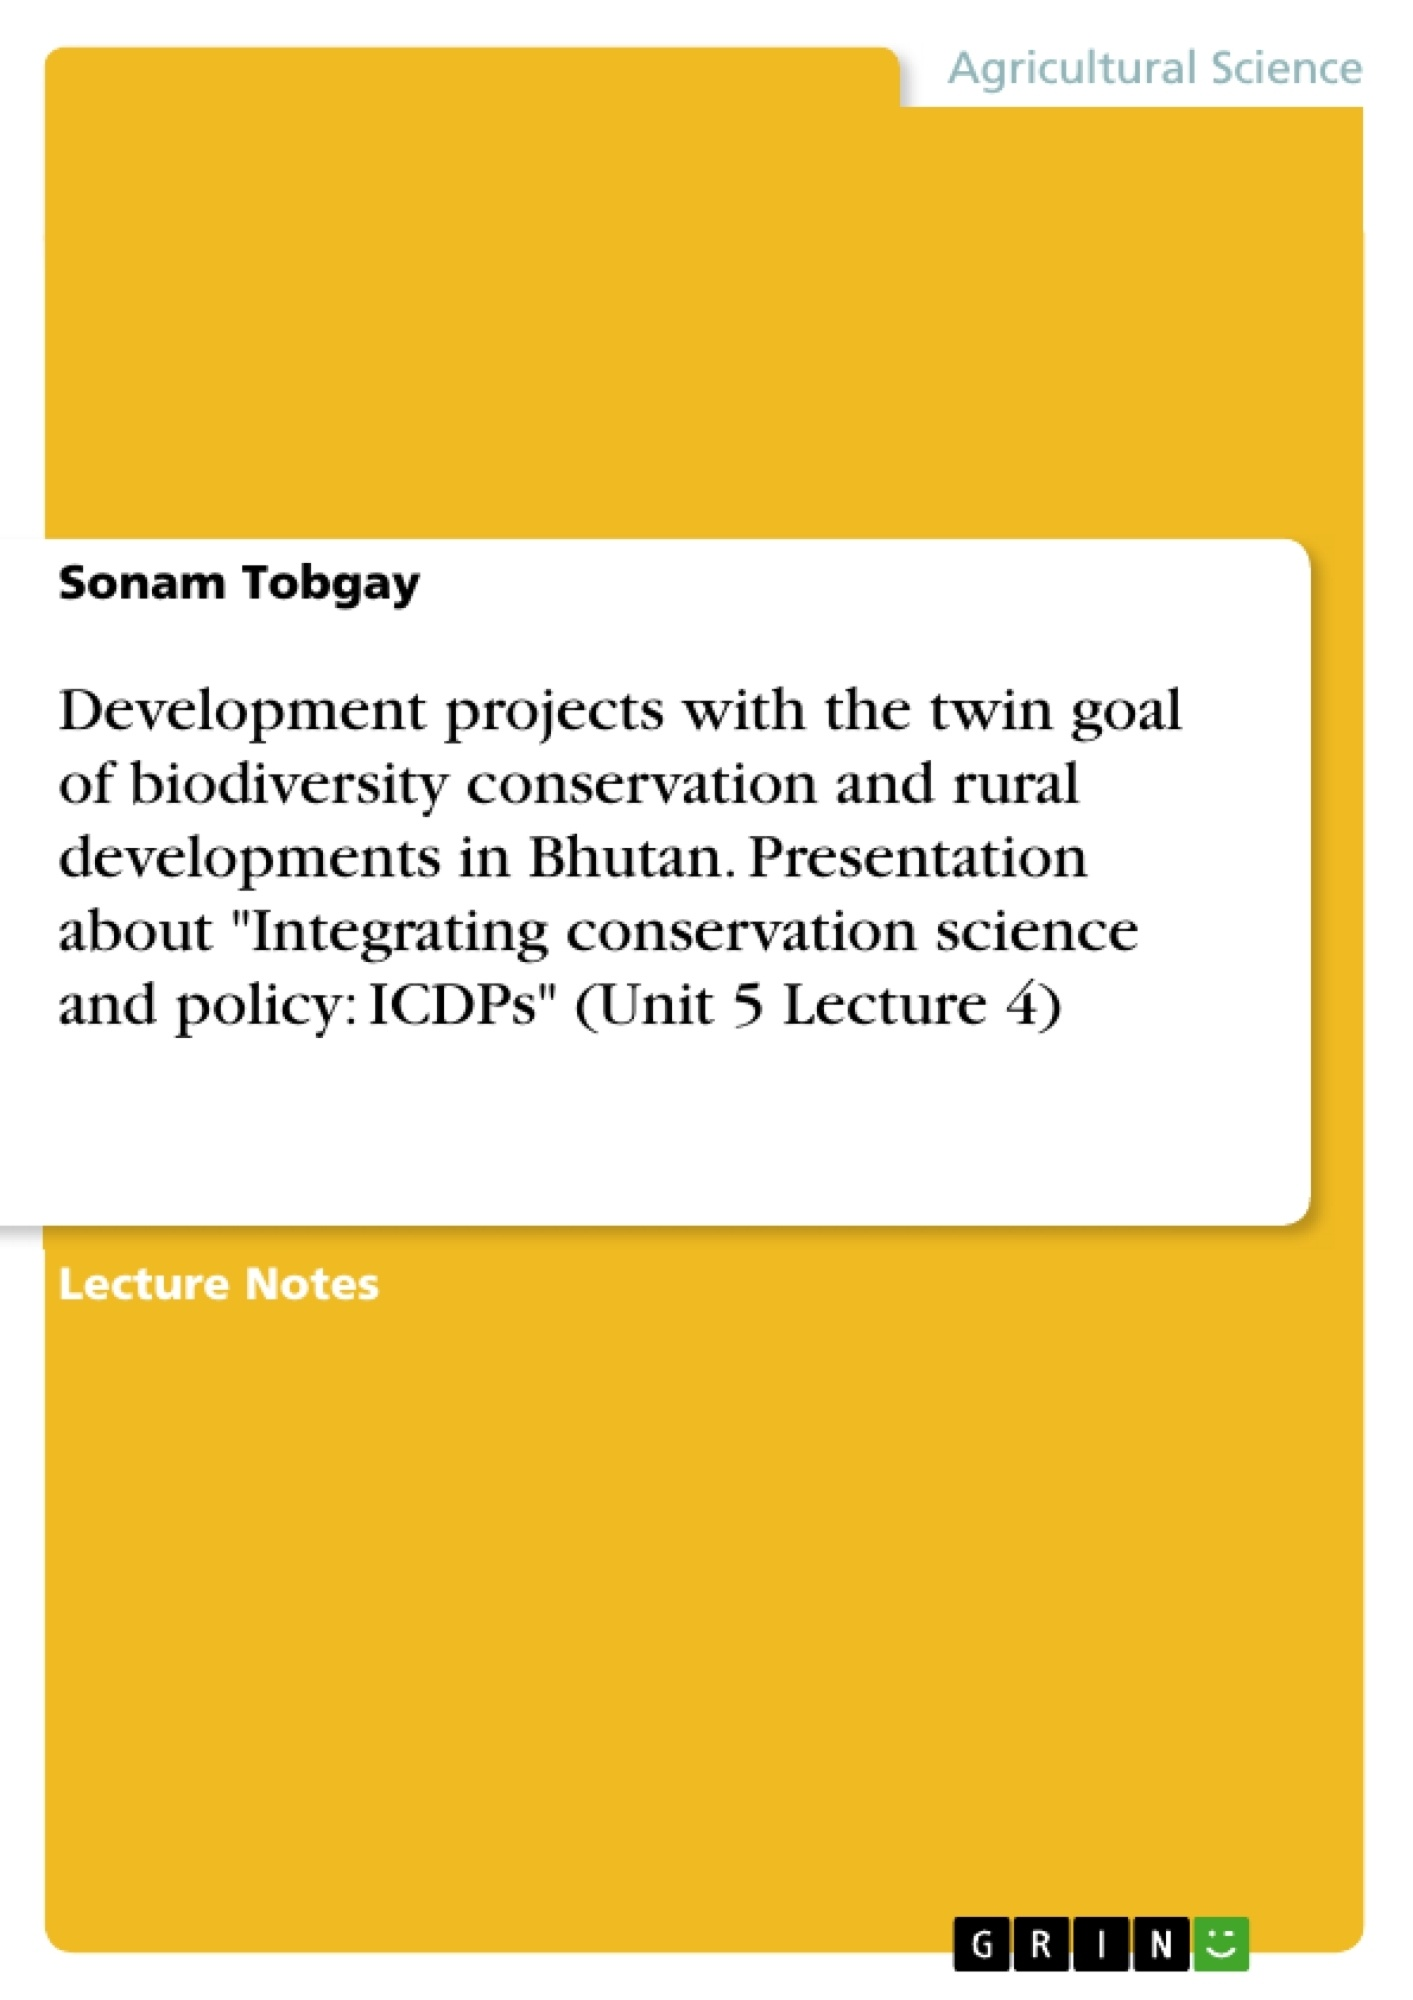 """Title: Development projects with the twin goal of biodiversity conservation and rural developments in Bhutan. Presentation about """"Integrating conservation science and policy: ICDPs"""" (Unit 5 Lecture 4)"""